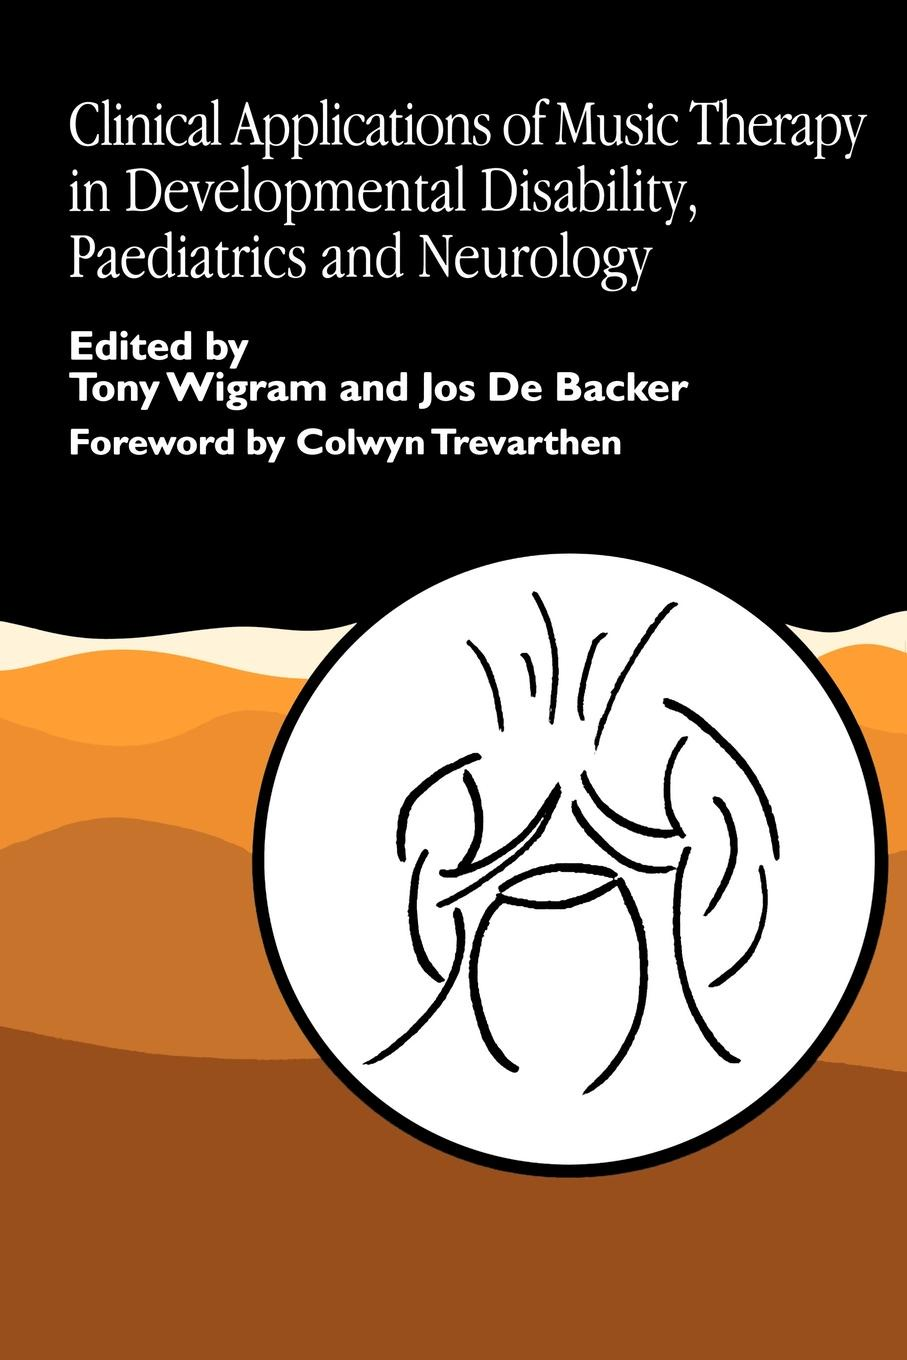 Jos De Backer Clinical Applications of Music Therapy in Developmental Disability, Paediatrics and Neurology